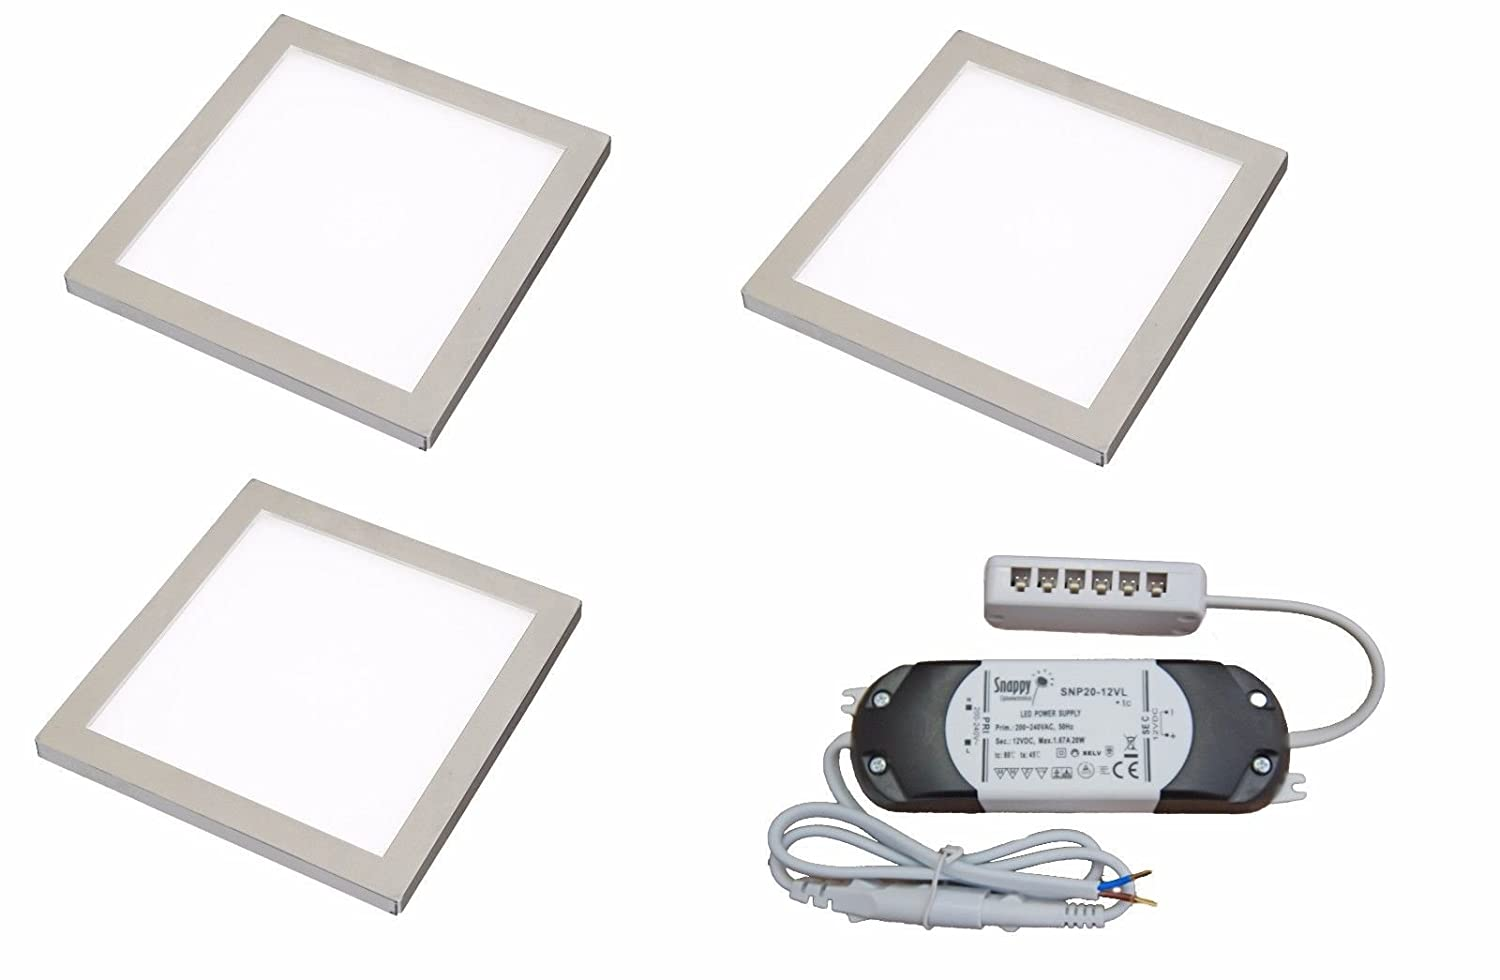 3 X SQUARE KITCHEN LIGHT SLIM FLAT PANEL UNDER CABINET CUPBOARD COOL WHITE LED Lighting Innovations